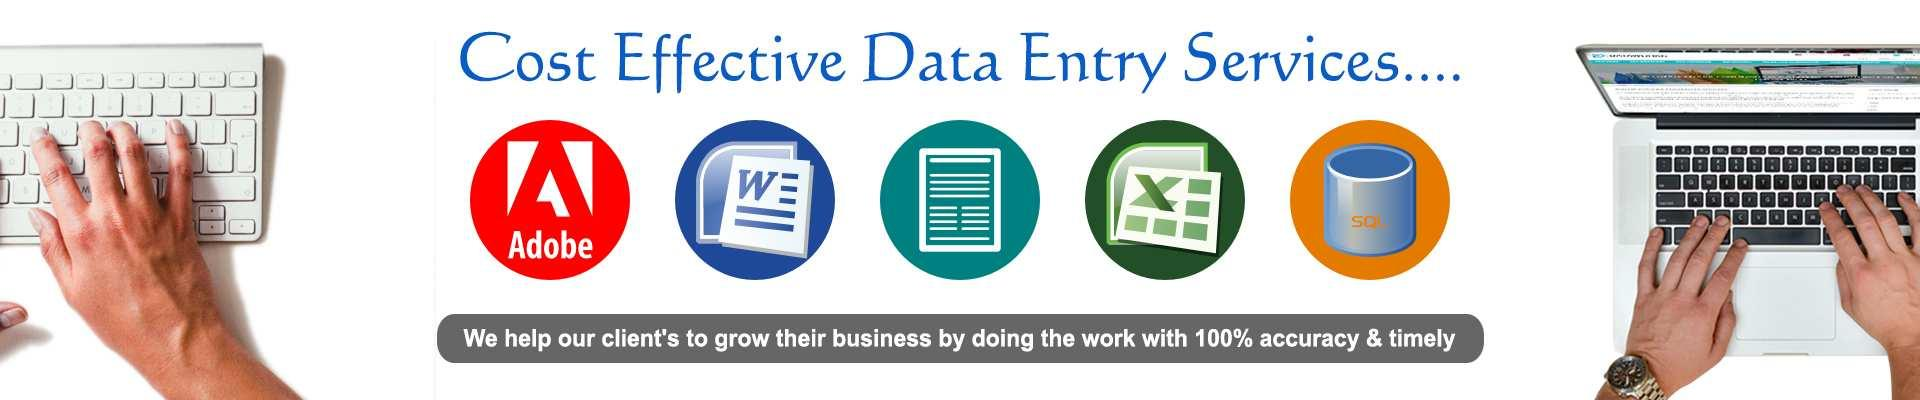 Cost Effective Data Entry Services